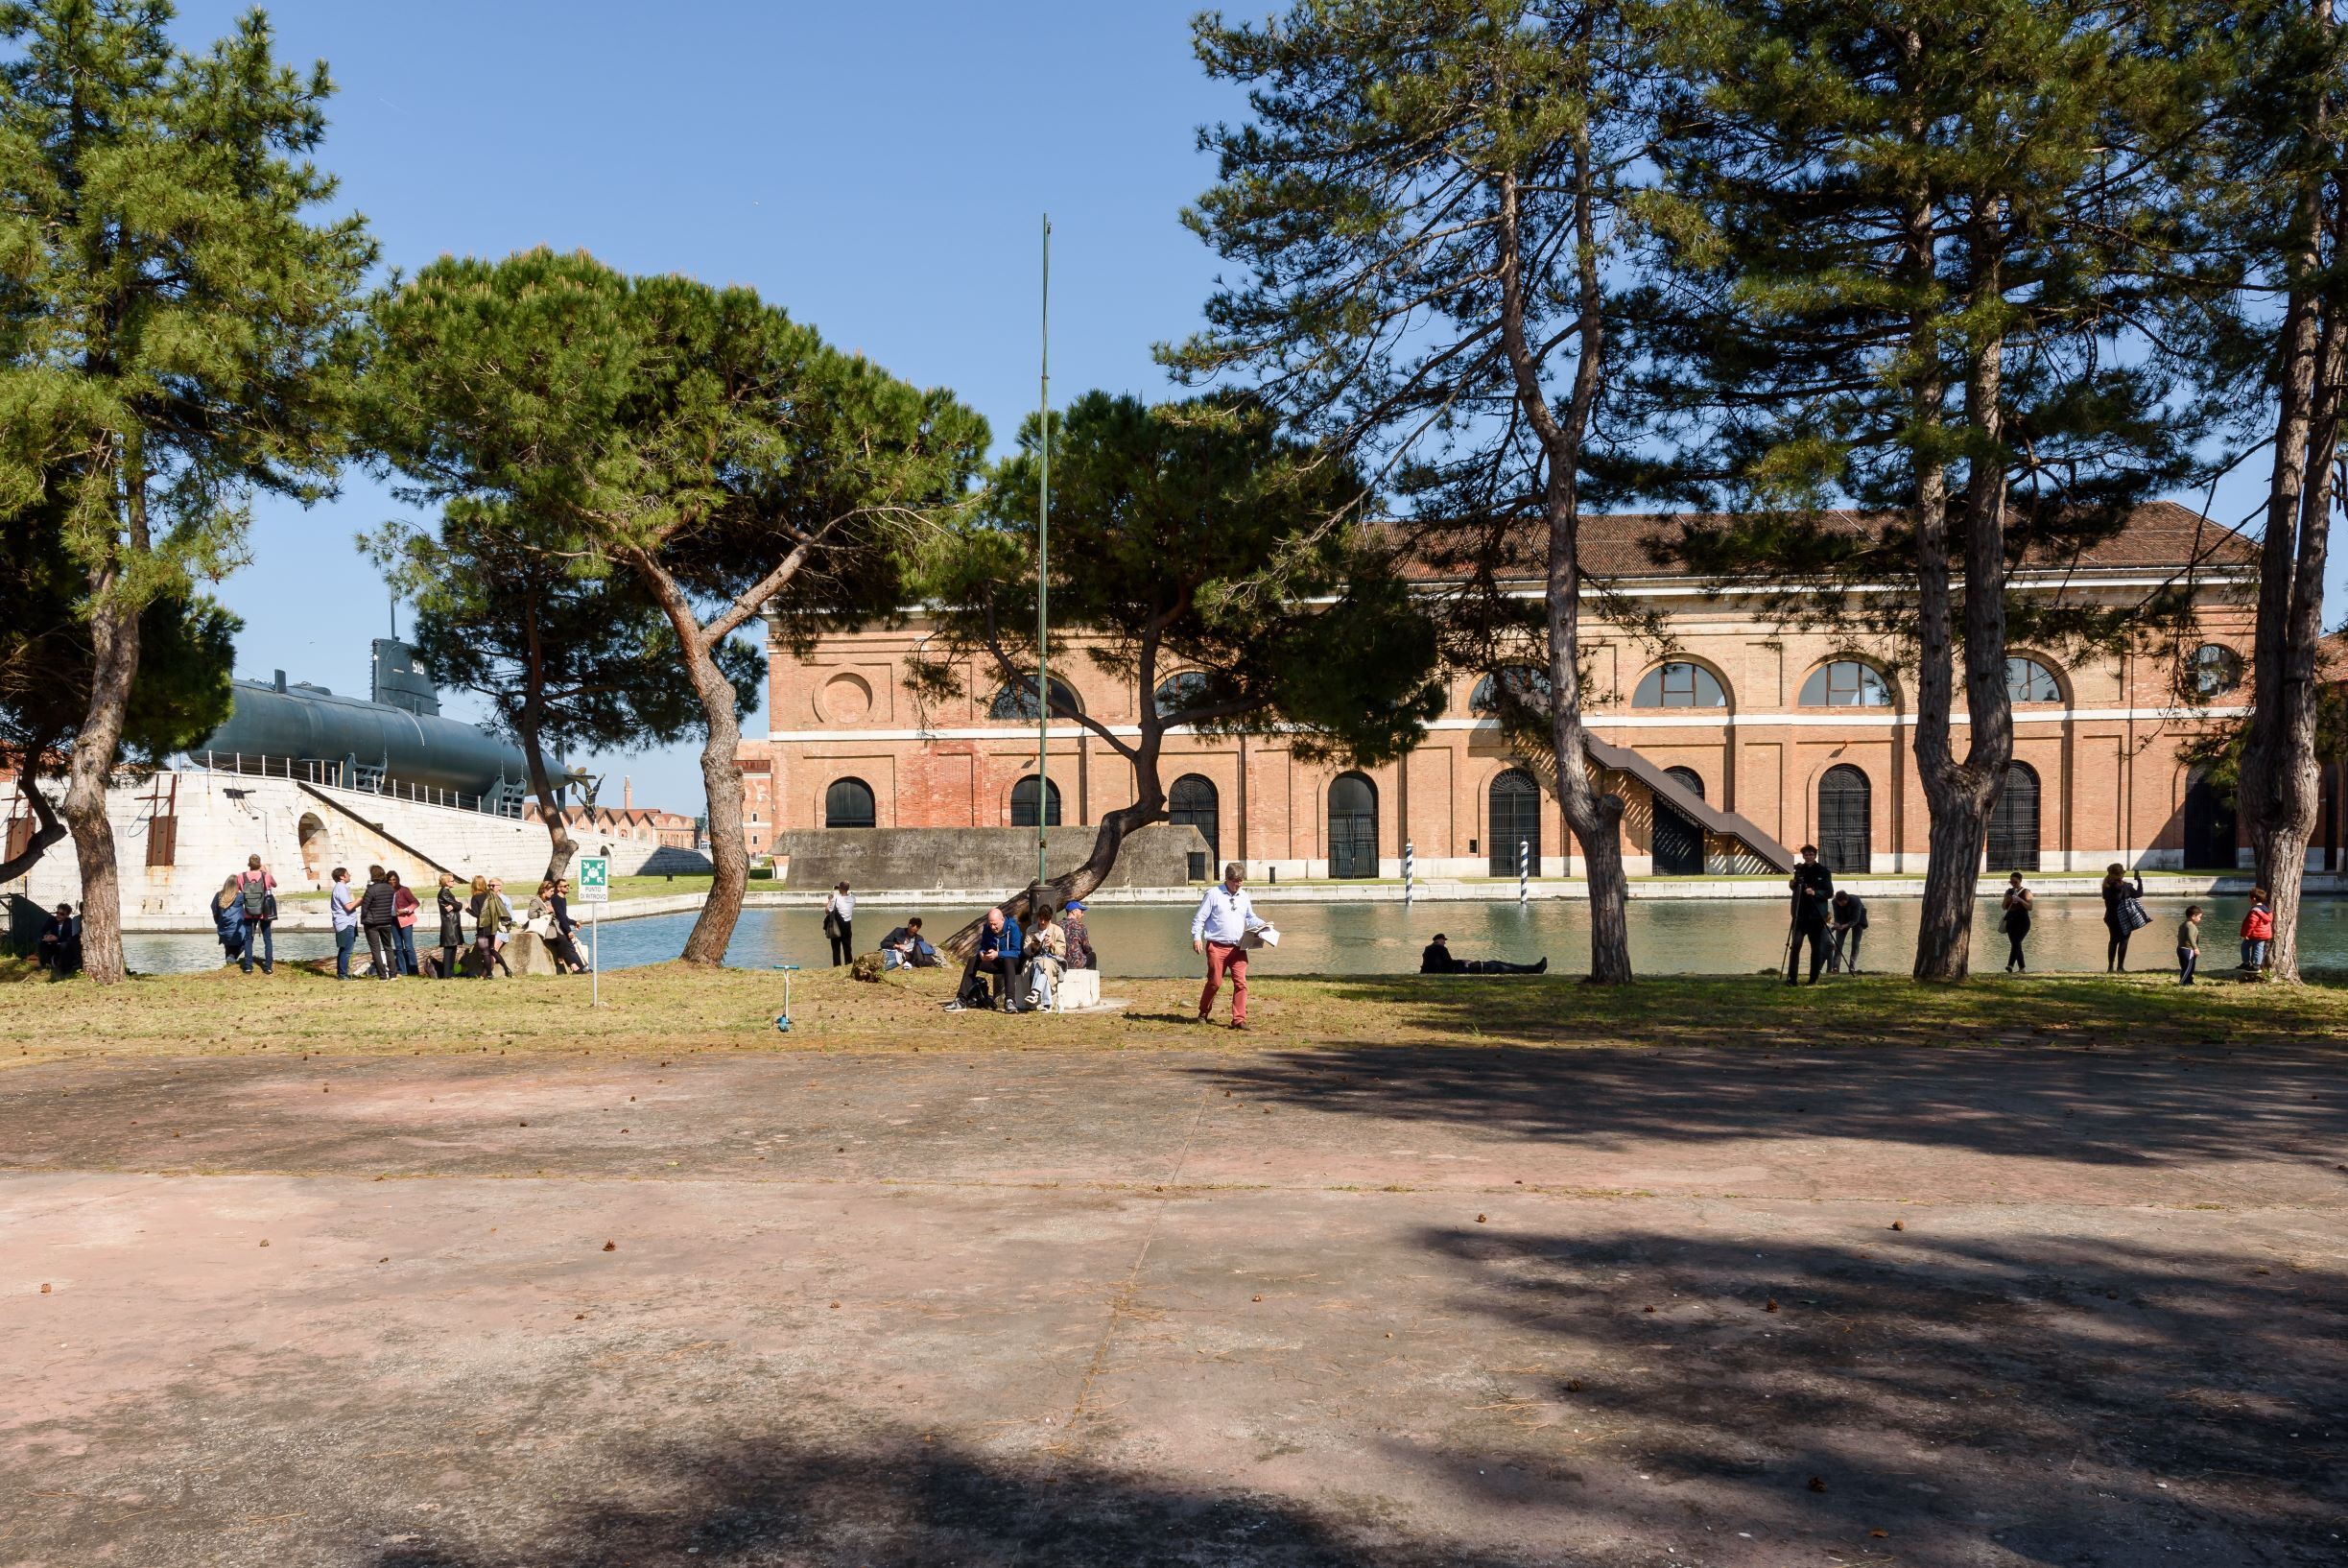 Pavilion of LITHUANIA, Sun & Sea (Marina). Photo by: Andrea Avezzù. Courtesy: La Biennale di Venezia